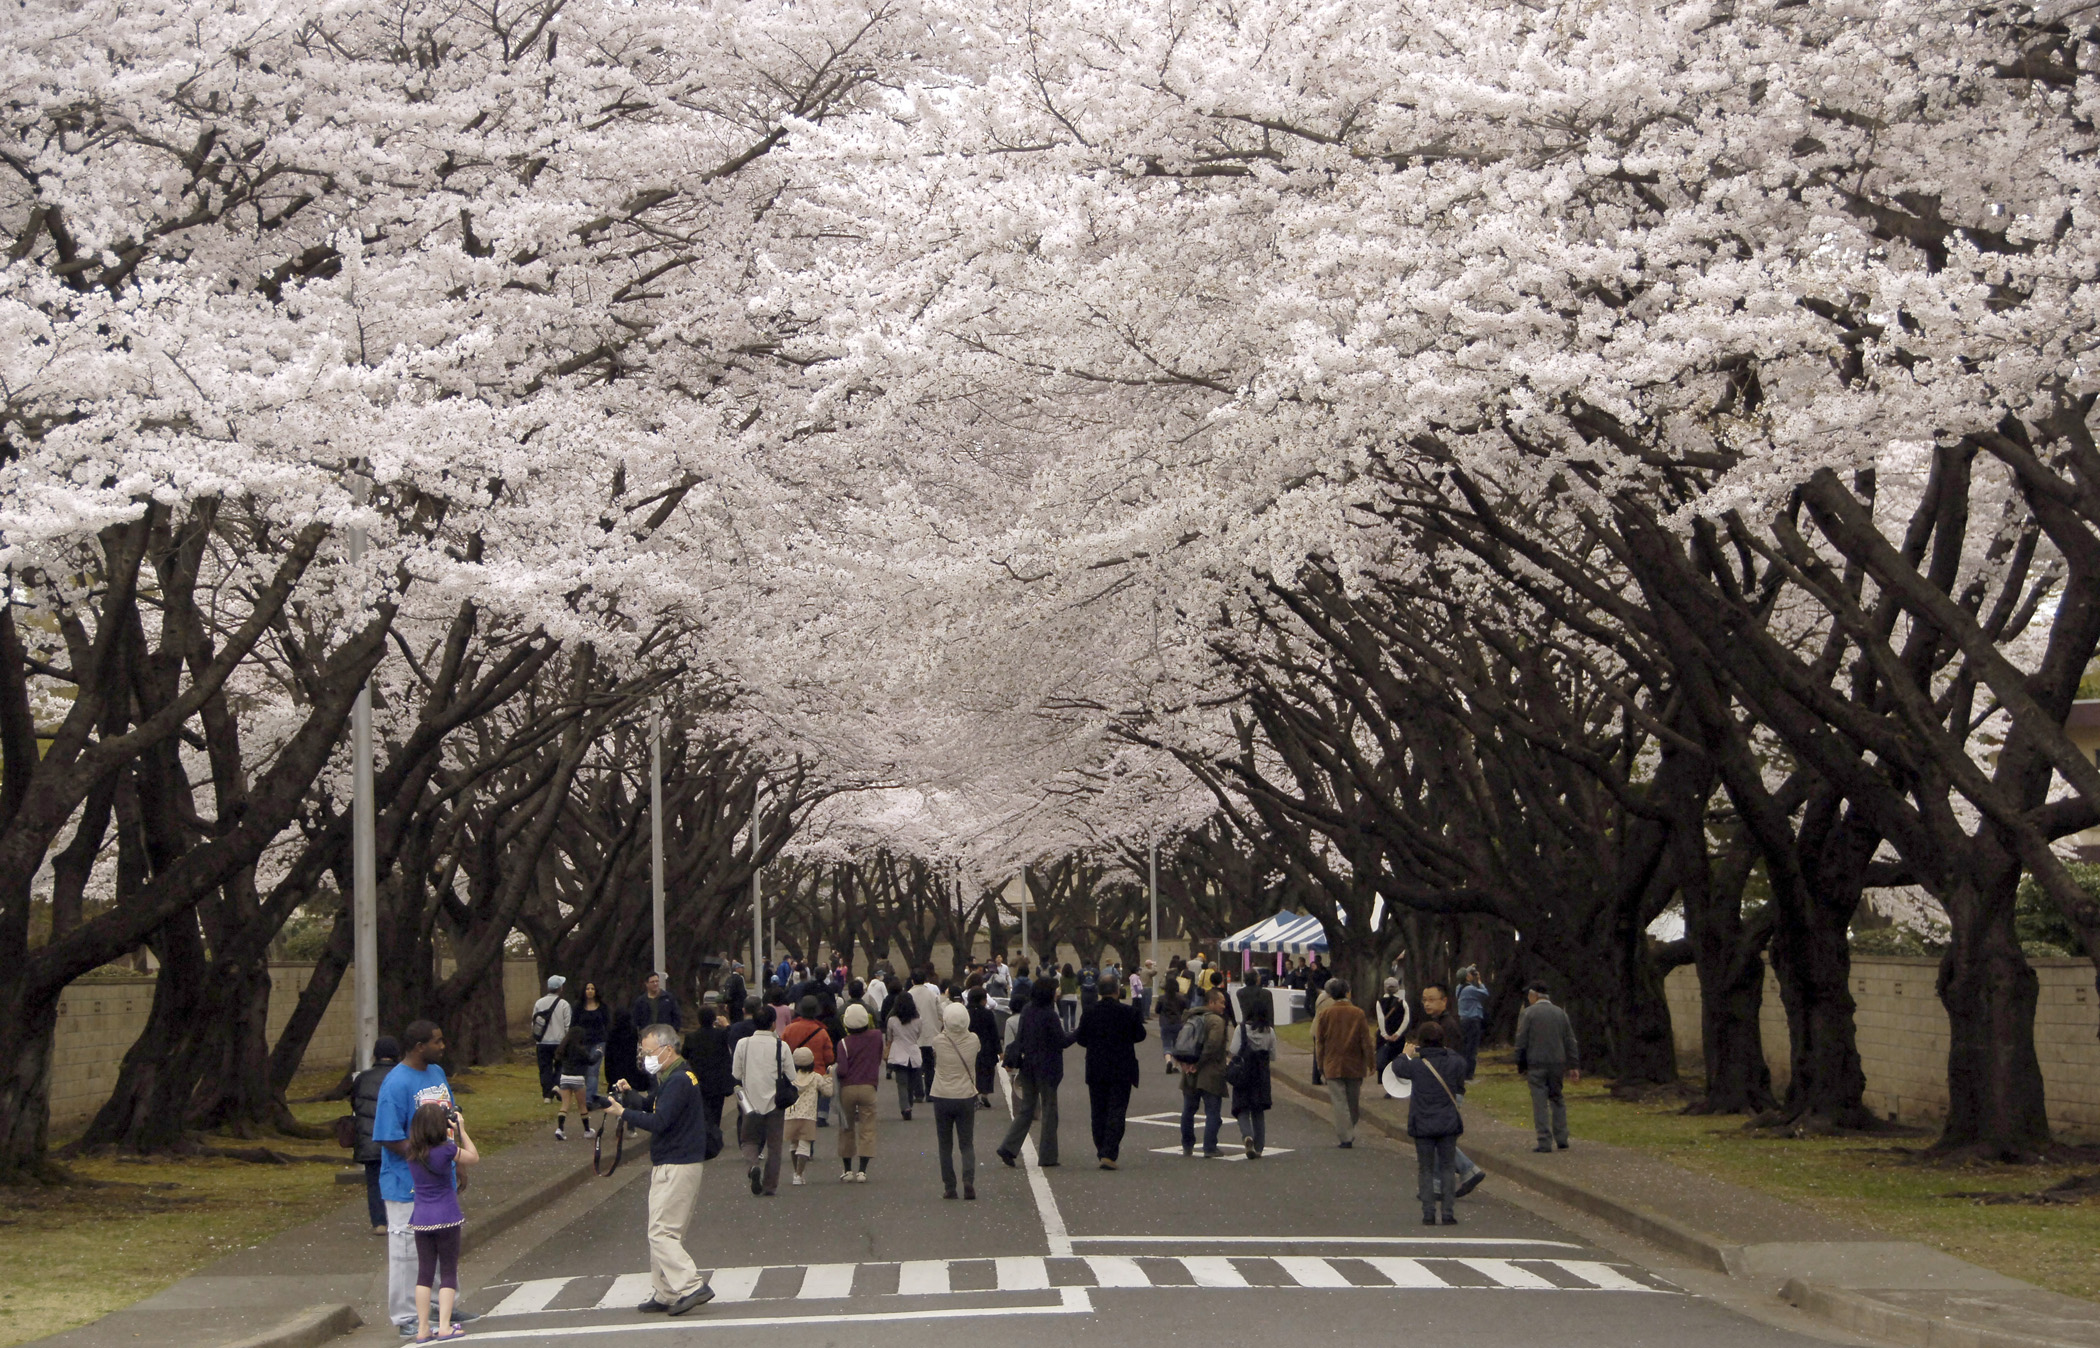 The Cherry Blossom Festival is one of the Things to do in Japan in April